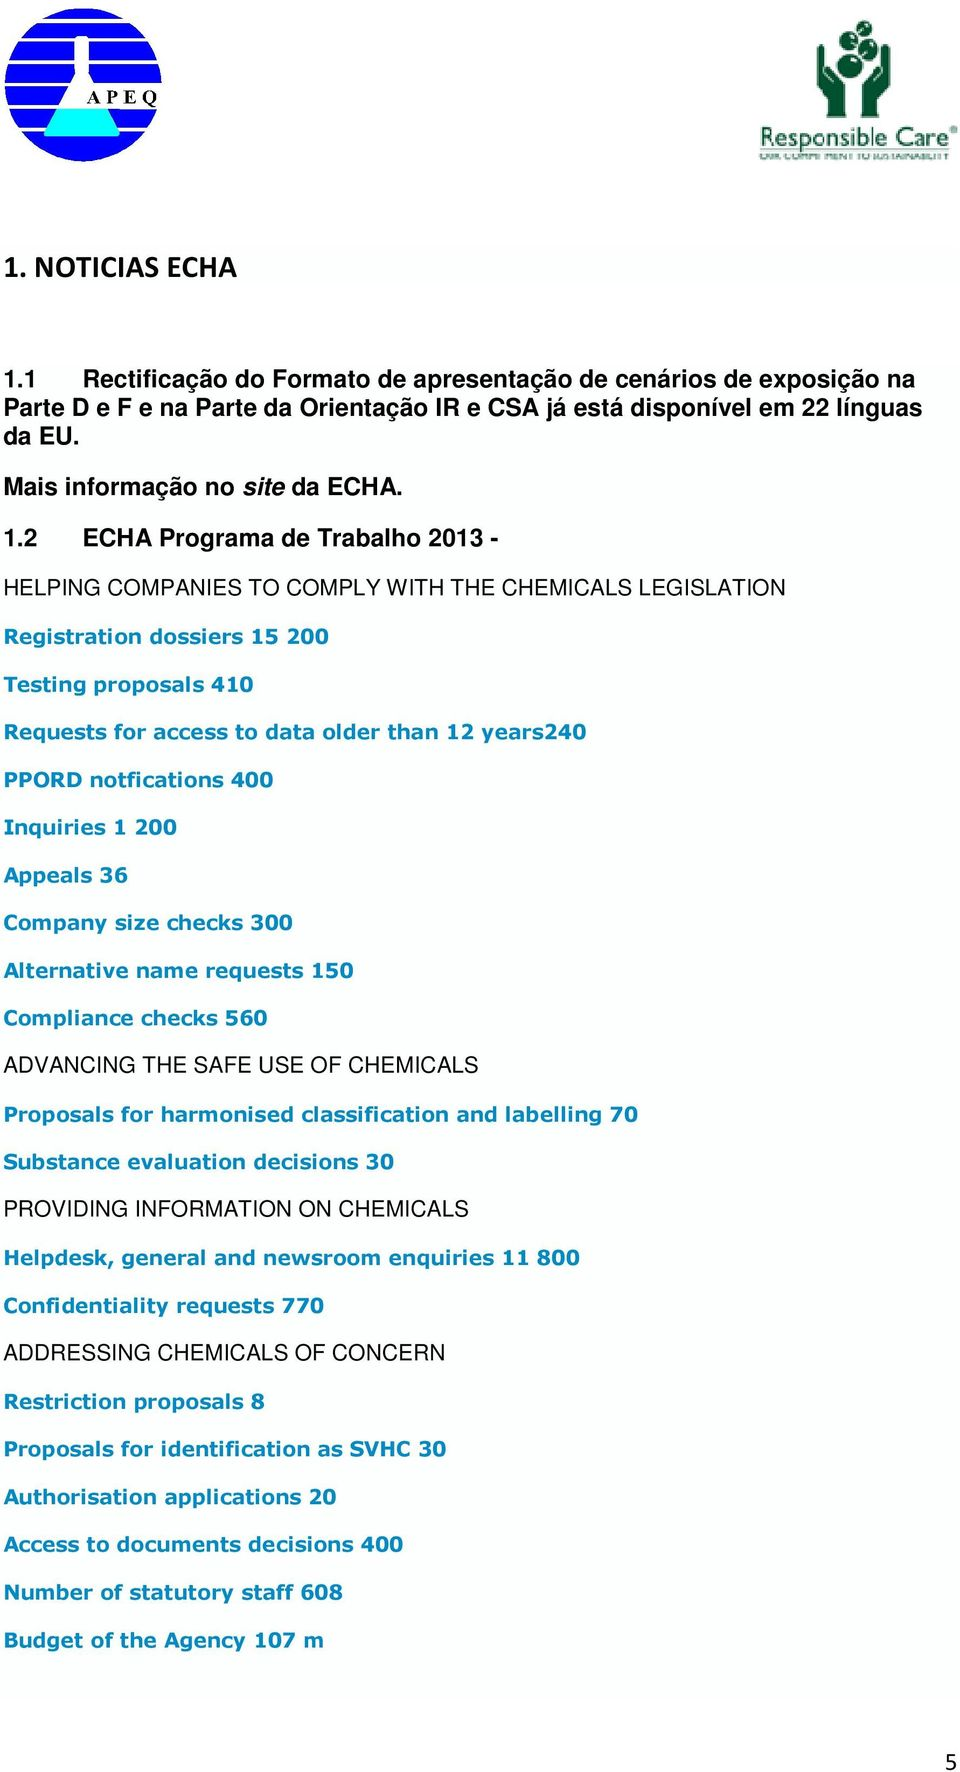 2 ECHA Programa de Trabalho 2013 - HELPING COMPANIES TO COMPLY WITH THE CHEMICALS LEGISLATION Registration dossiers 15 200 Testing proposals 410 Requests for access to data older than 12 years240